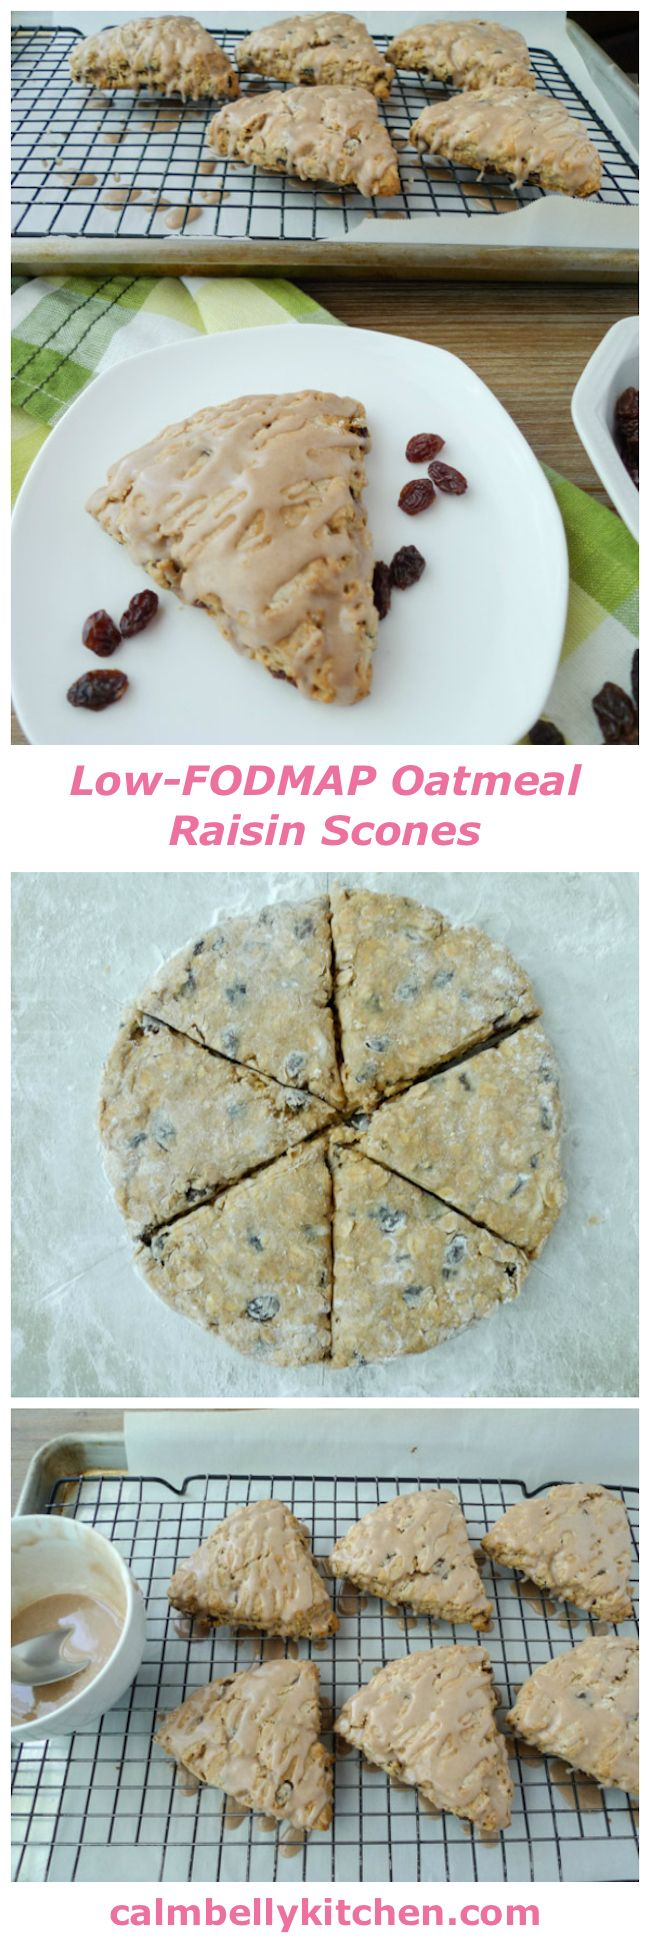 Low-FODMAP, gluten free scones with oats, raisins and cinnamon glaze ...